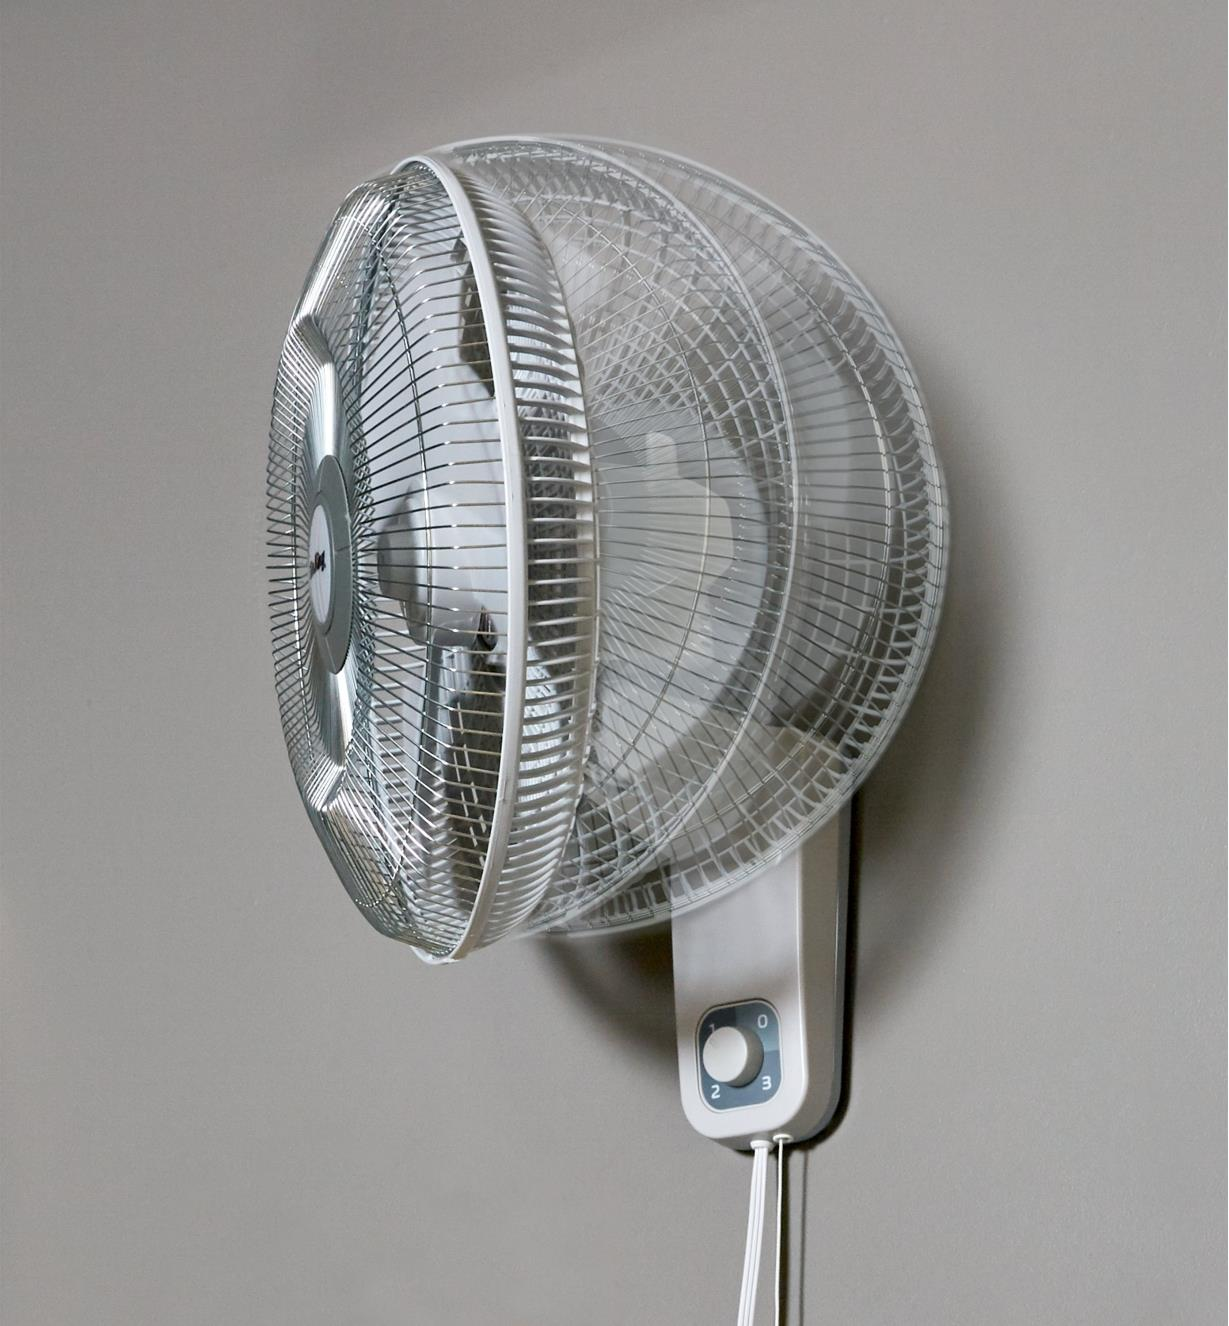 Ghosted image of the oscillating head of the Air King wall-mount fan